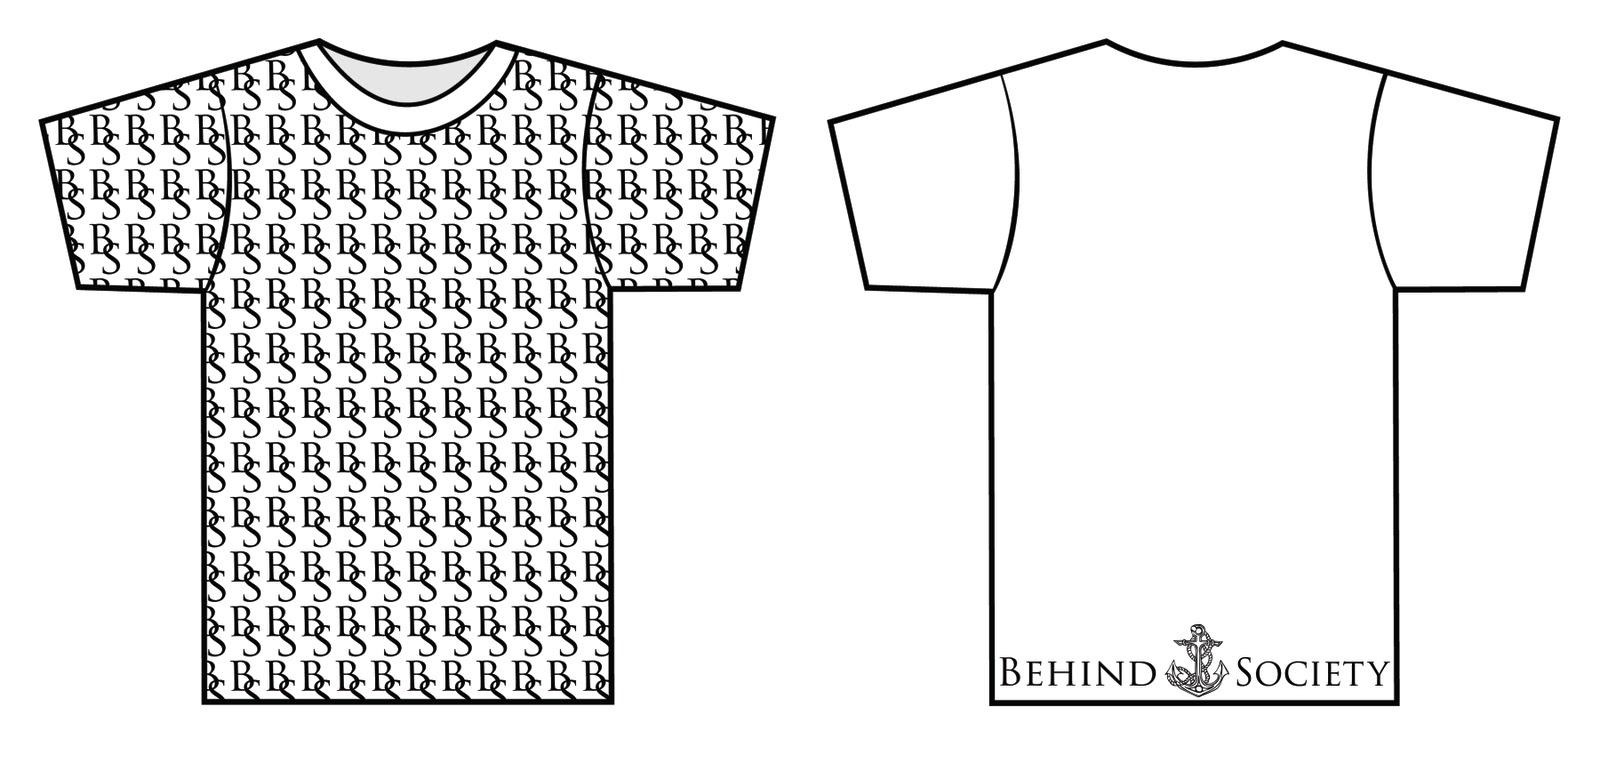 Anchor And Release Clothing >> Behind.Society Clothing Release Date!!! | Behind Society Blogs